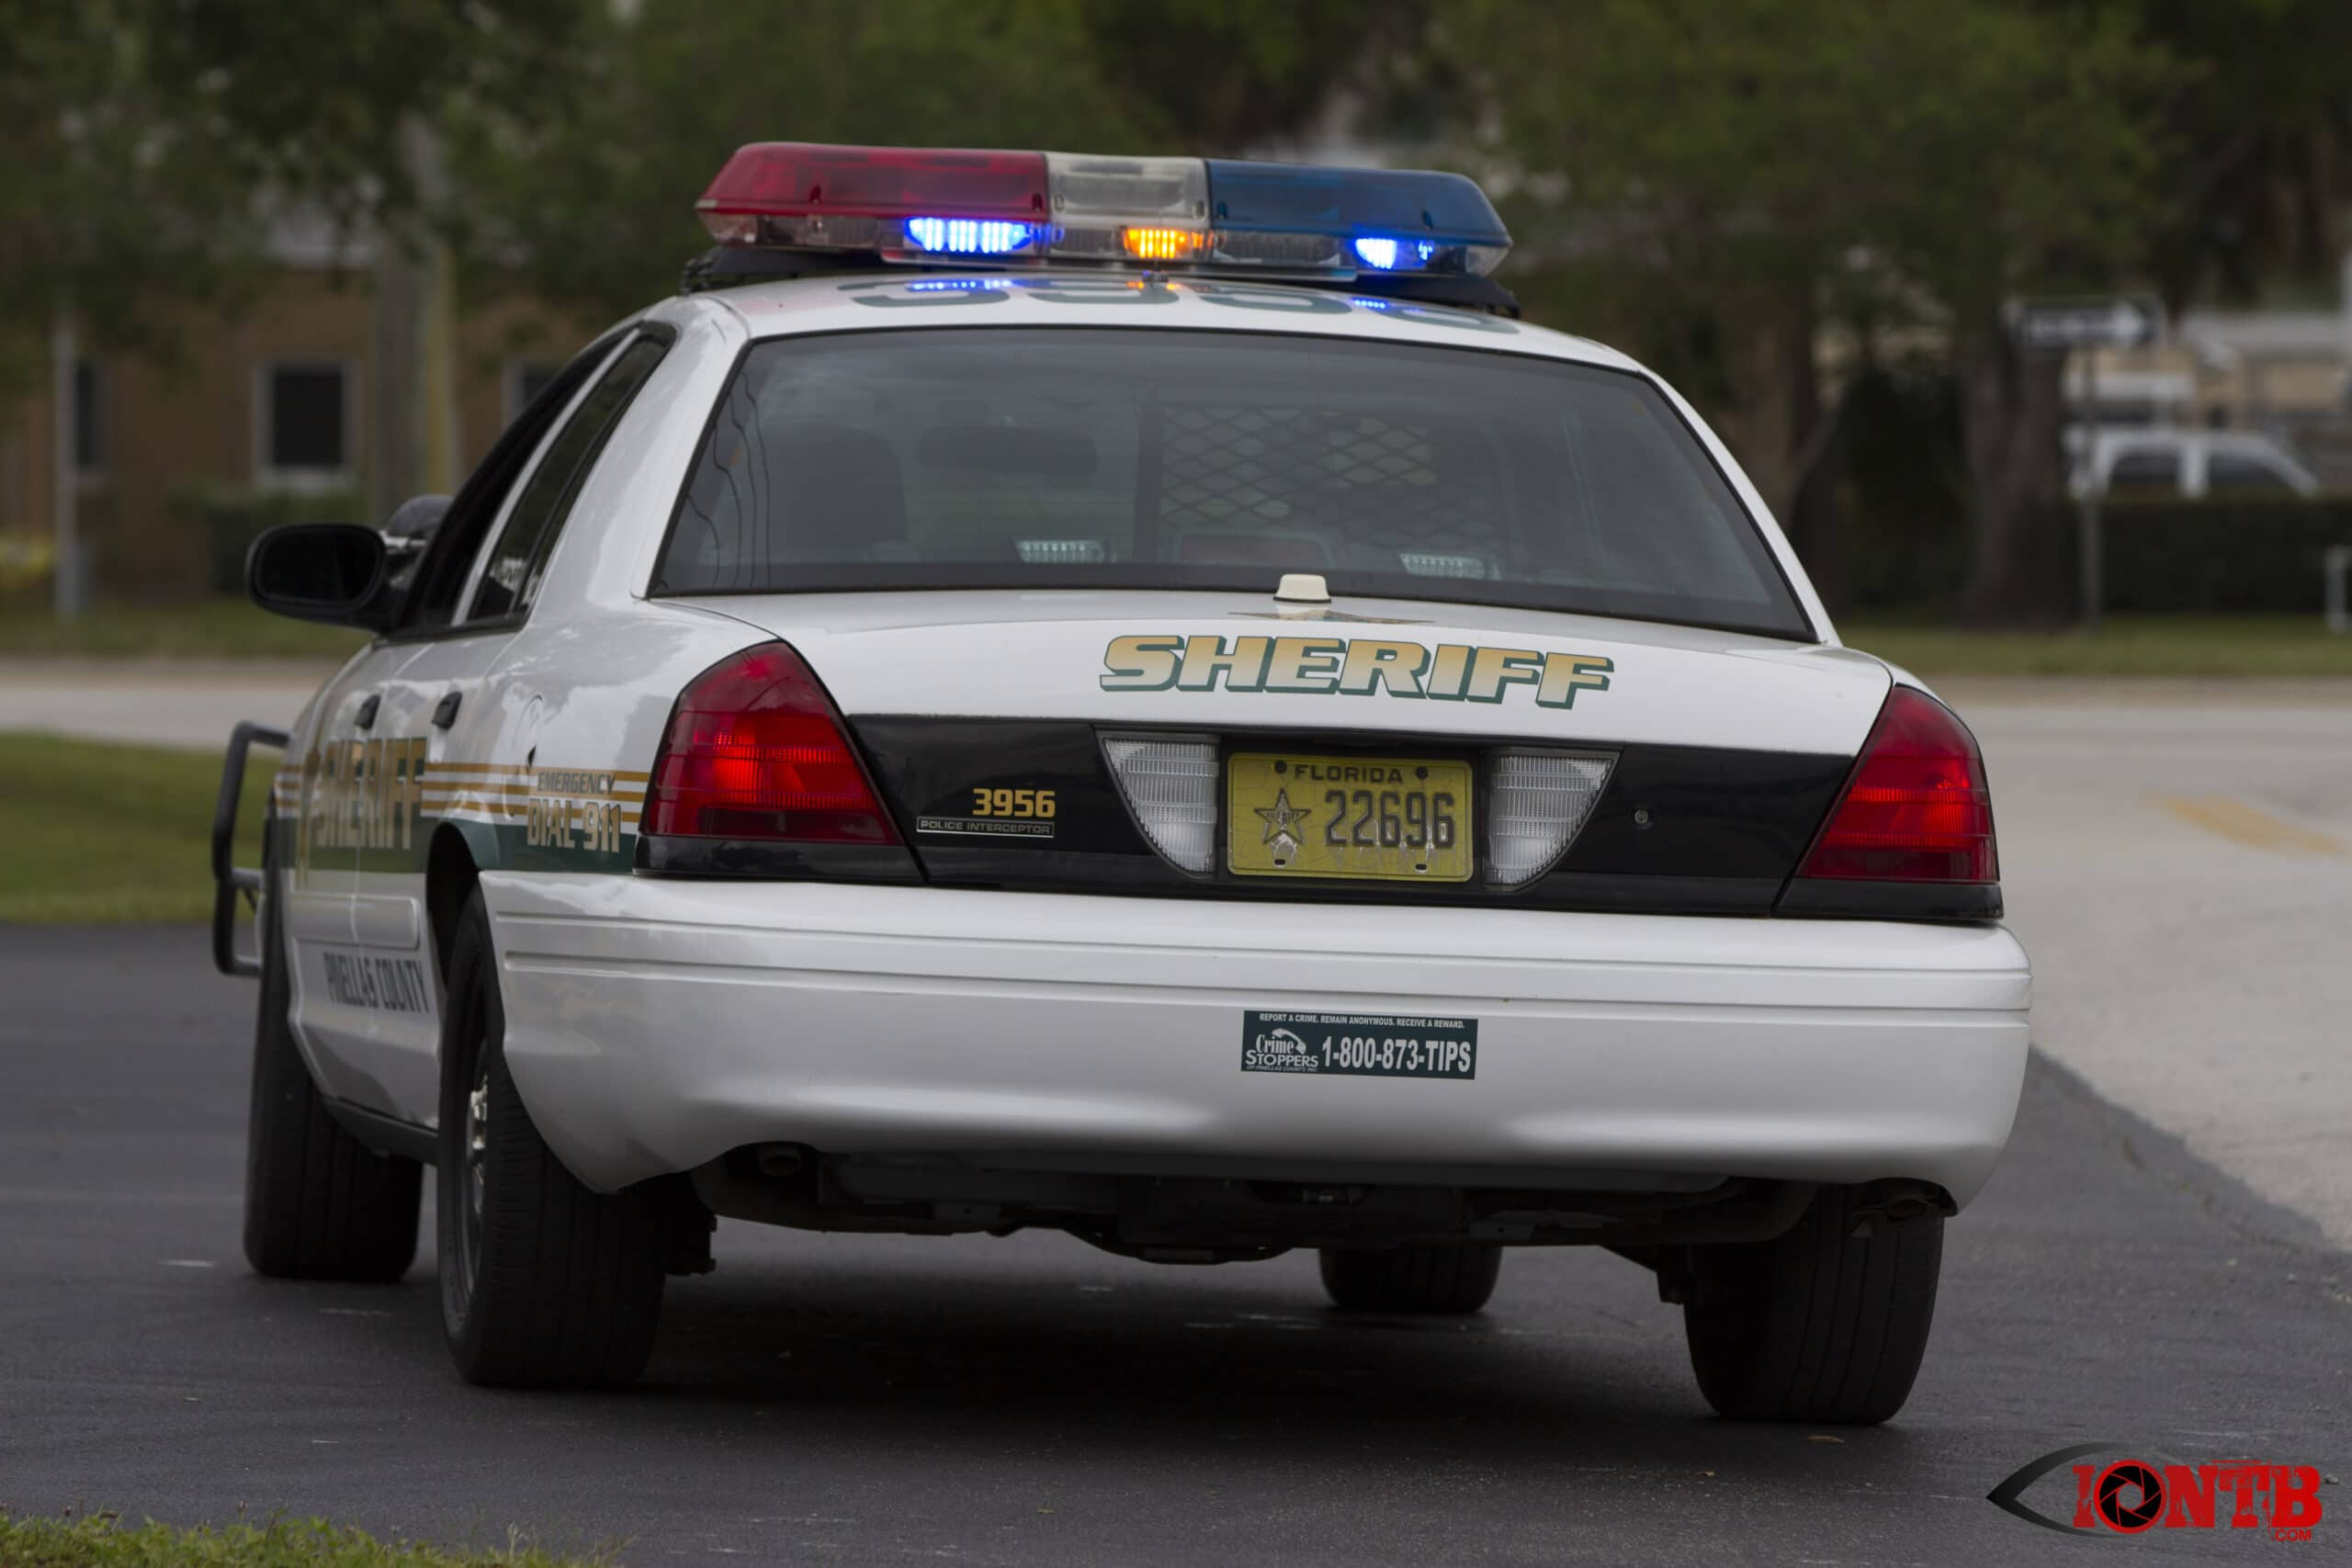 Woman on electric bicycle killed in Madeira Beach crash